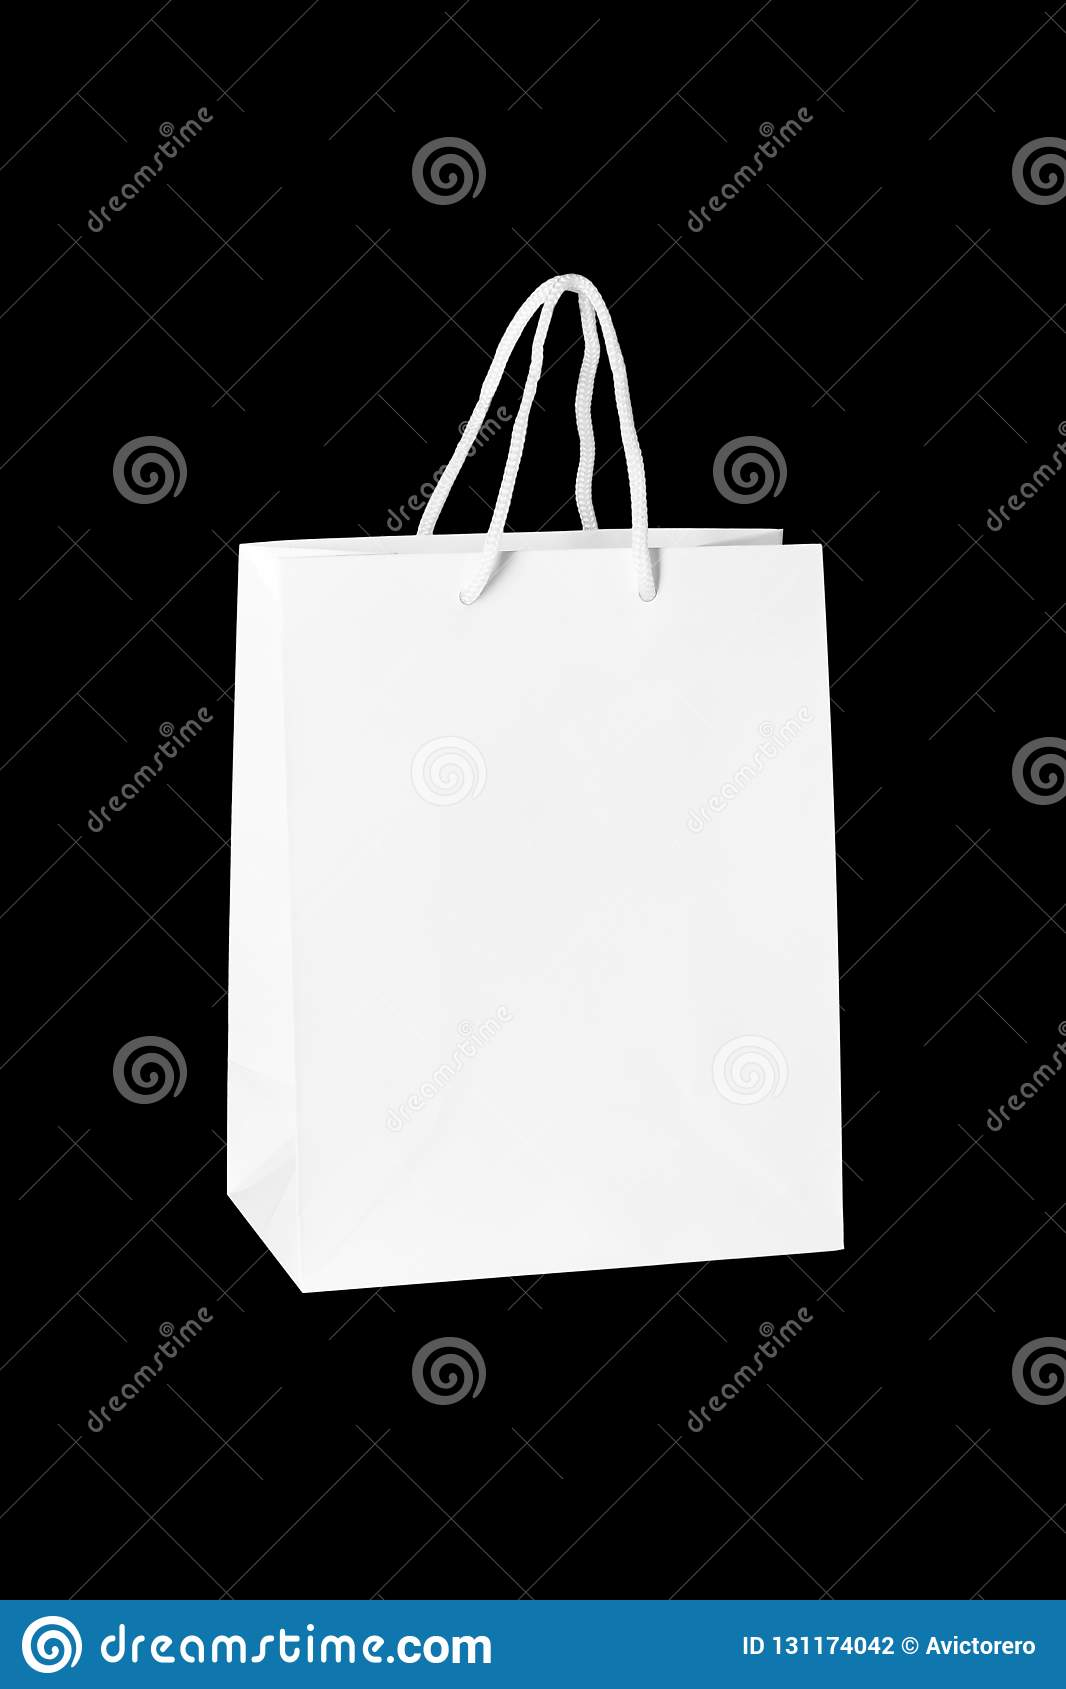 Mockup of paper shopping bag isolated on Black background